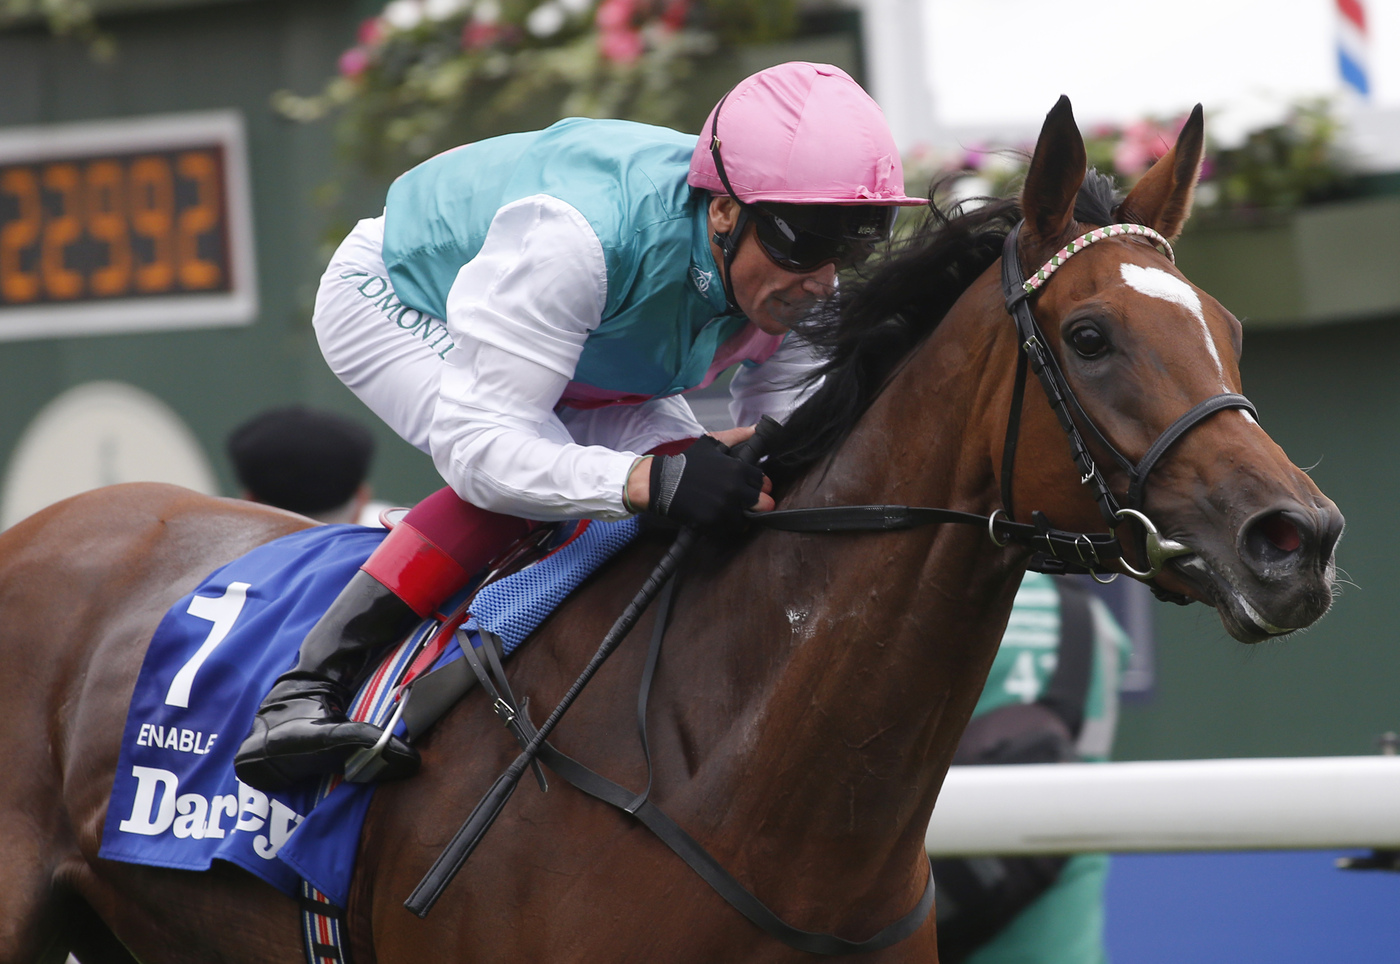 Longines Flat Racing Event: Crystal Ocean, Enable and Waldgeist crowned the 2019 Longines World's Best Racehorses, Qatar Prix de l'Arc de Triomphe named Longines World's Best Horse Race for the fourth time 5